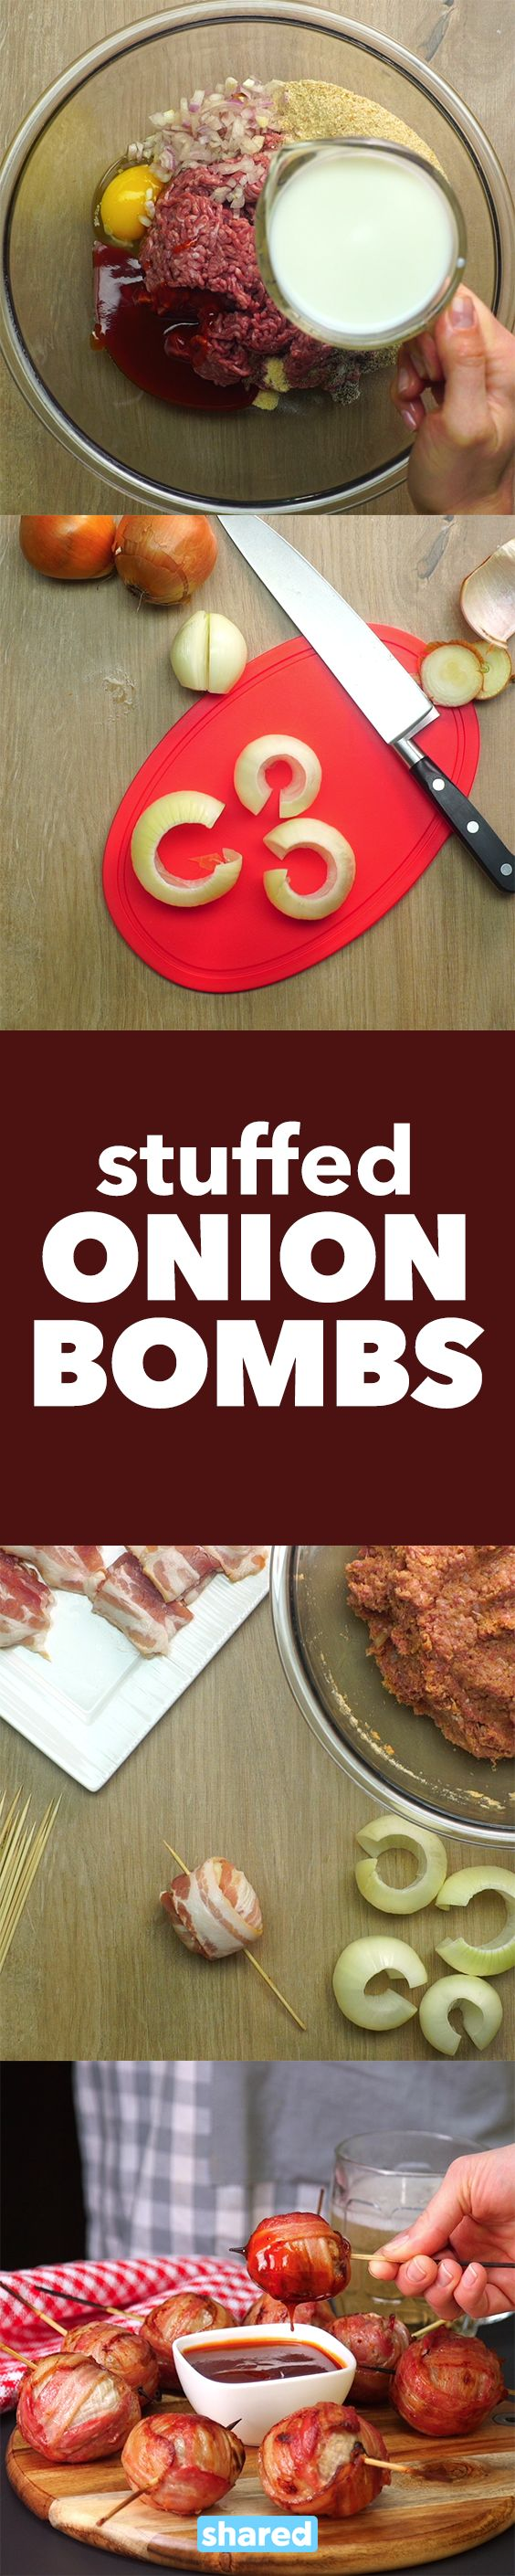 http://tipsalud.com Stuffed Onion Bombs